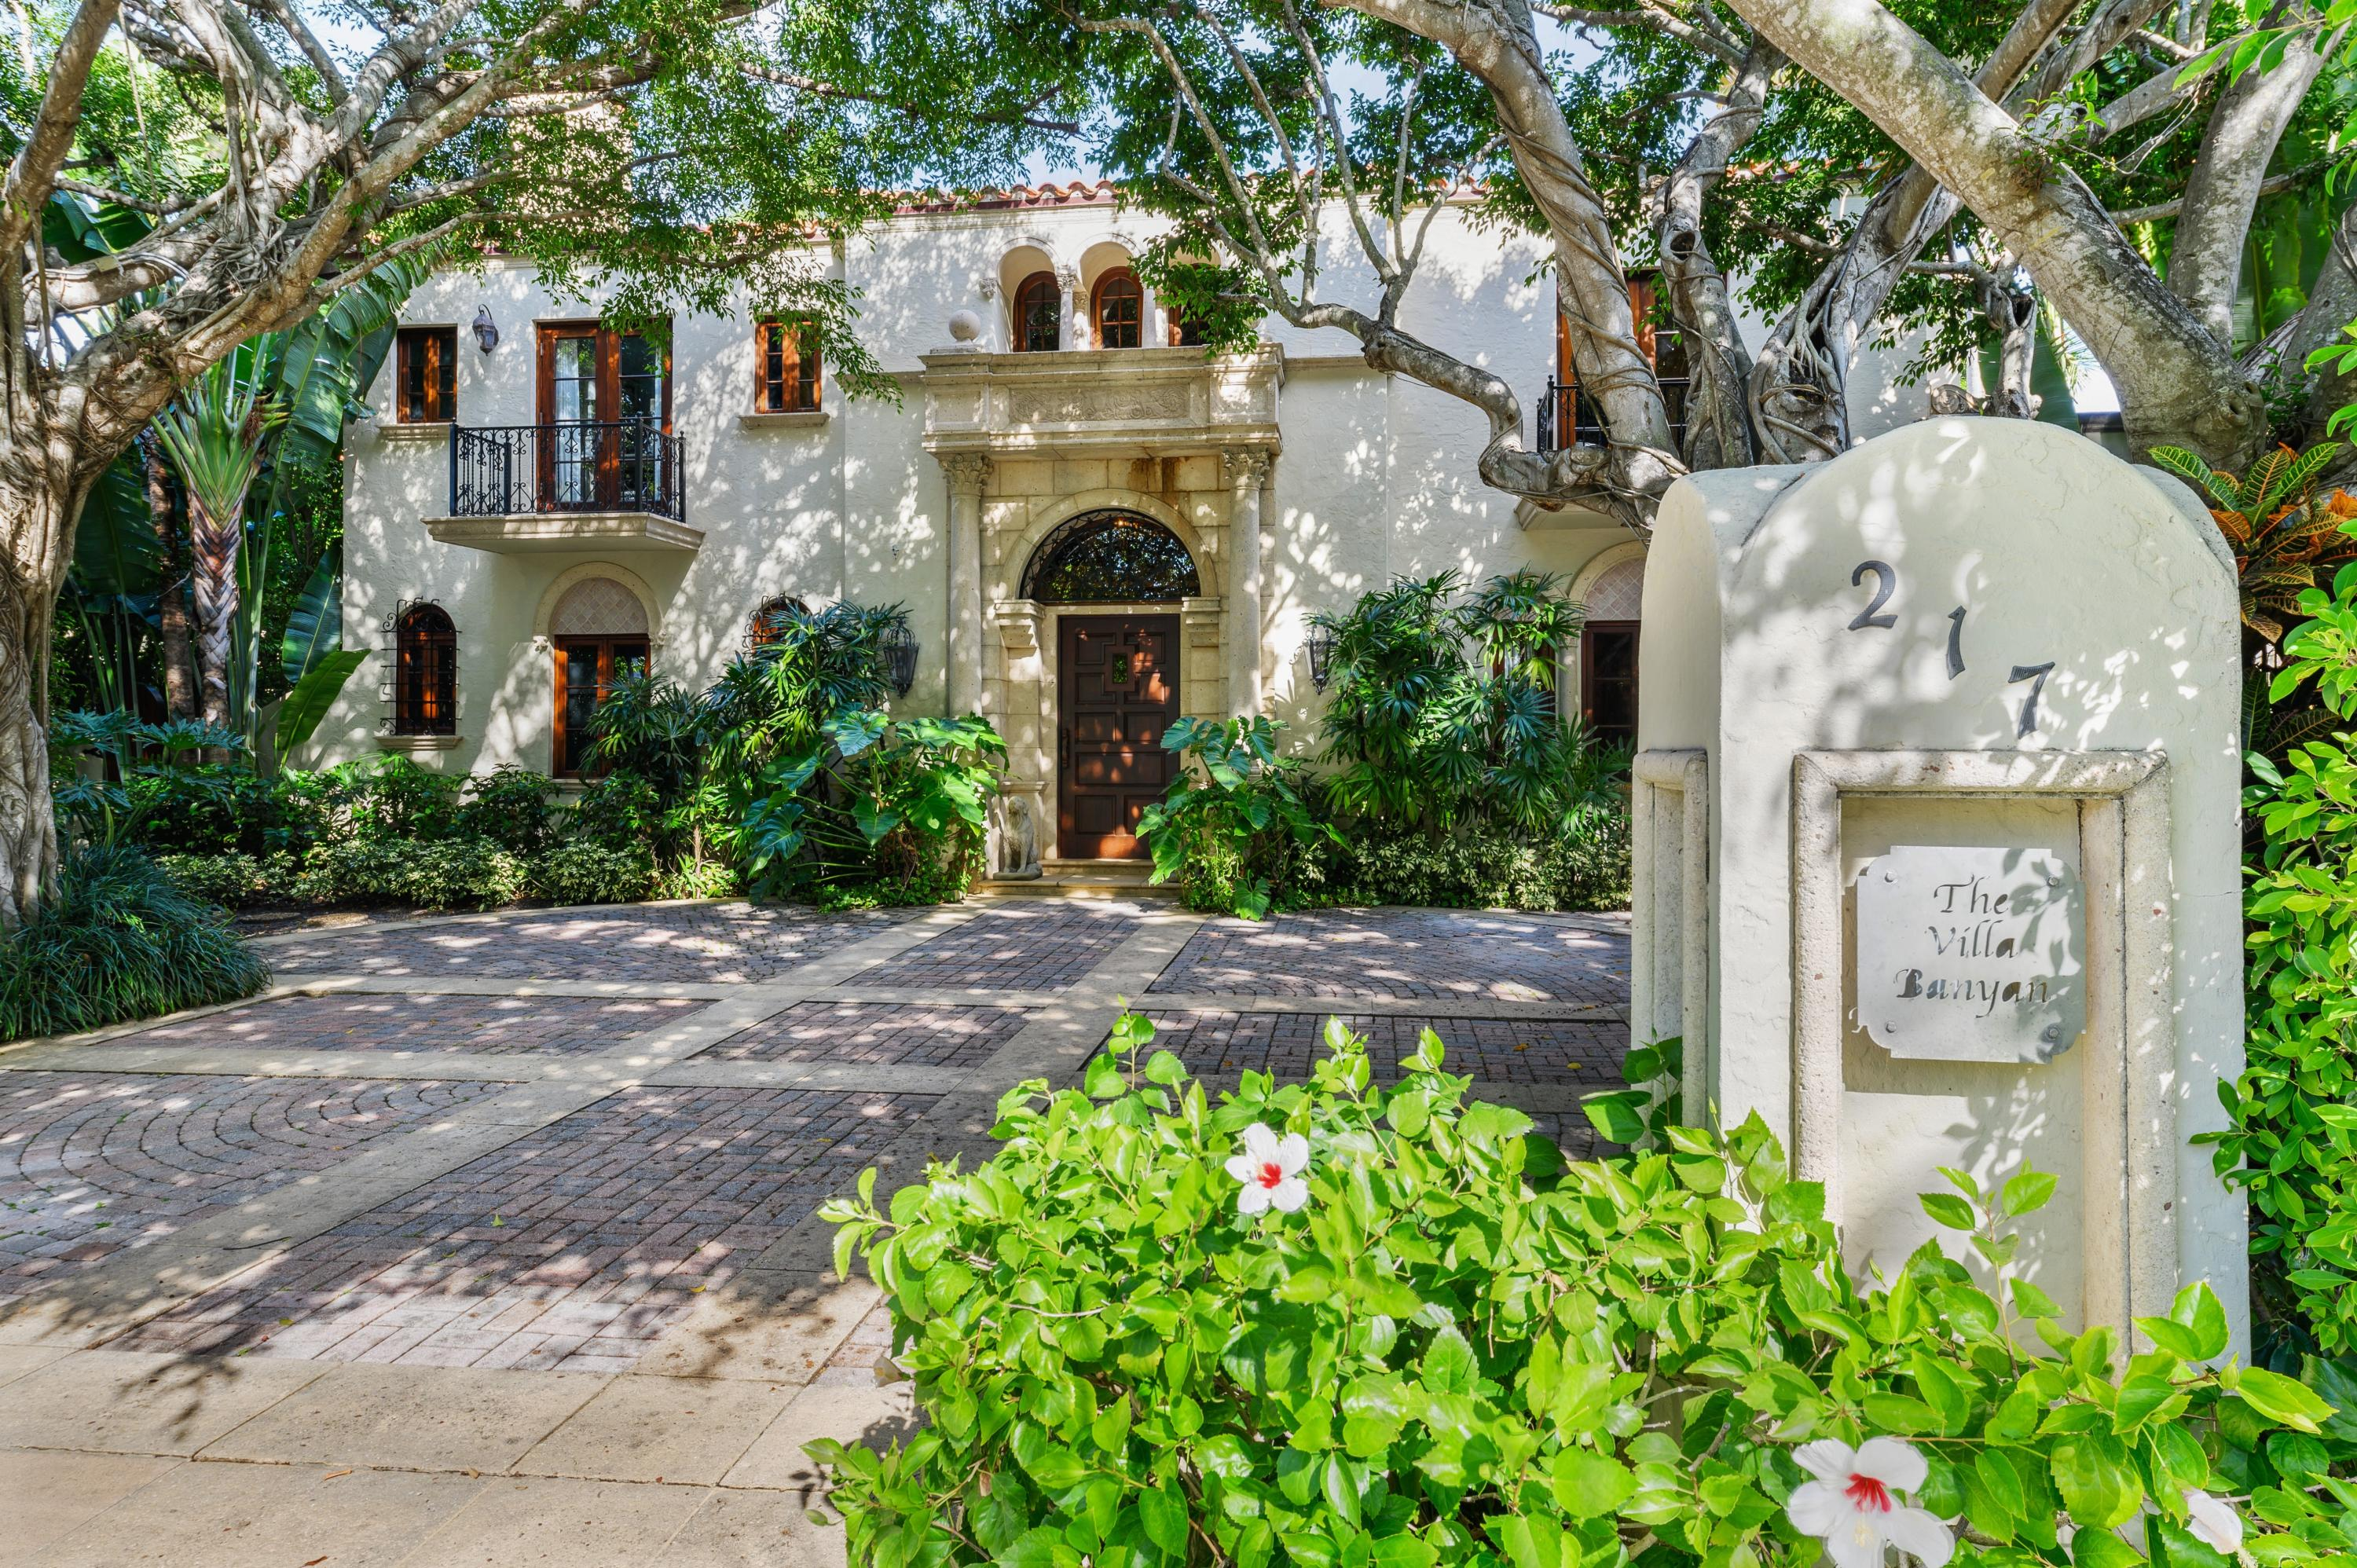 New Home for sale at 217 Clarke Avenue in Palm Beach